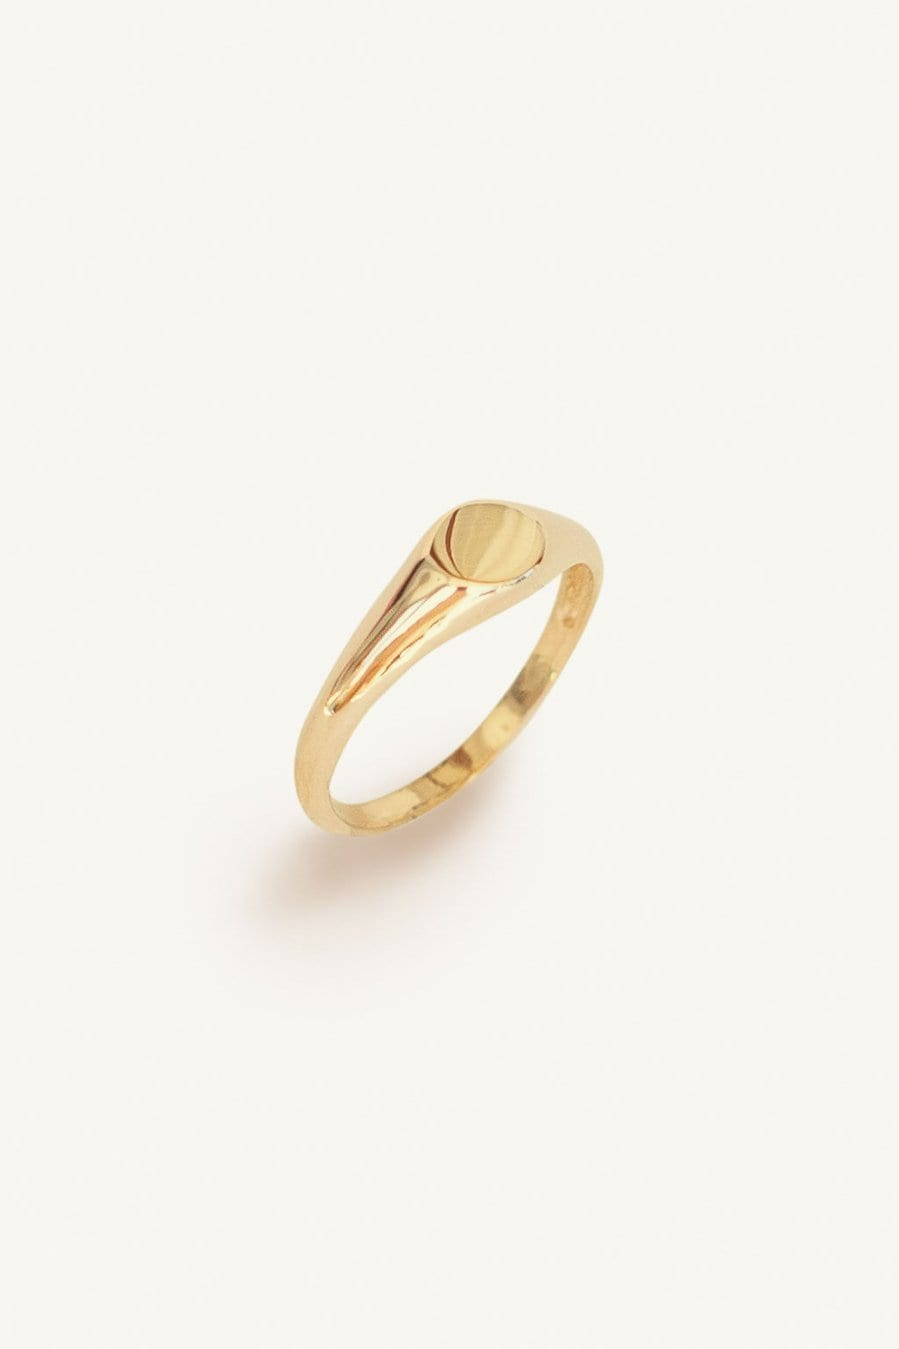 Petite Signet Ring / Neighborhood Goods